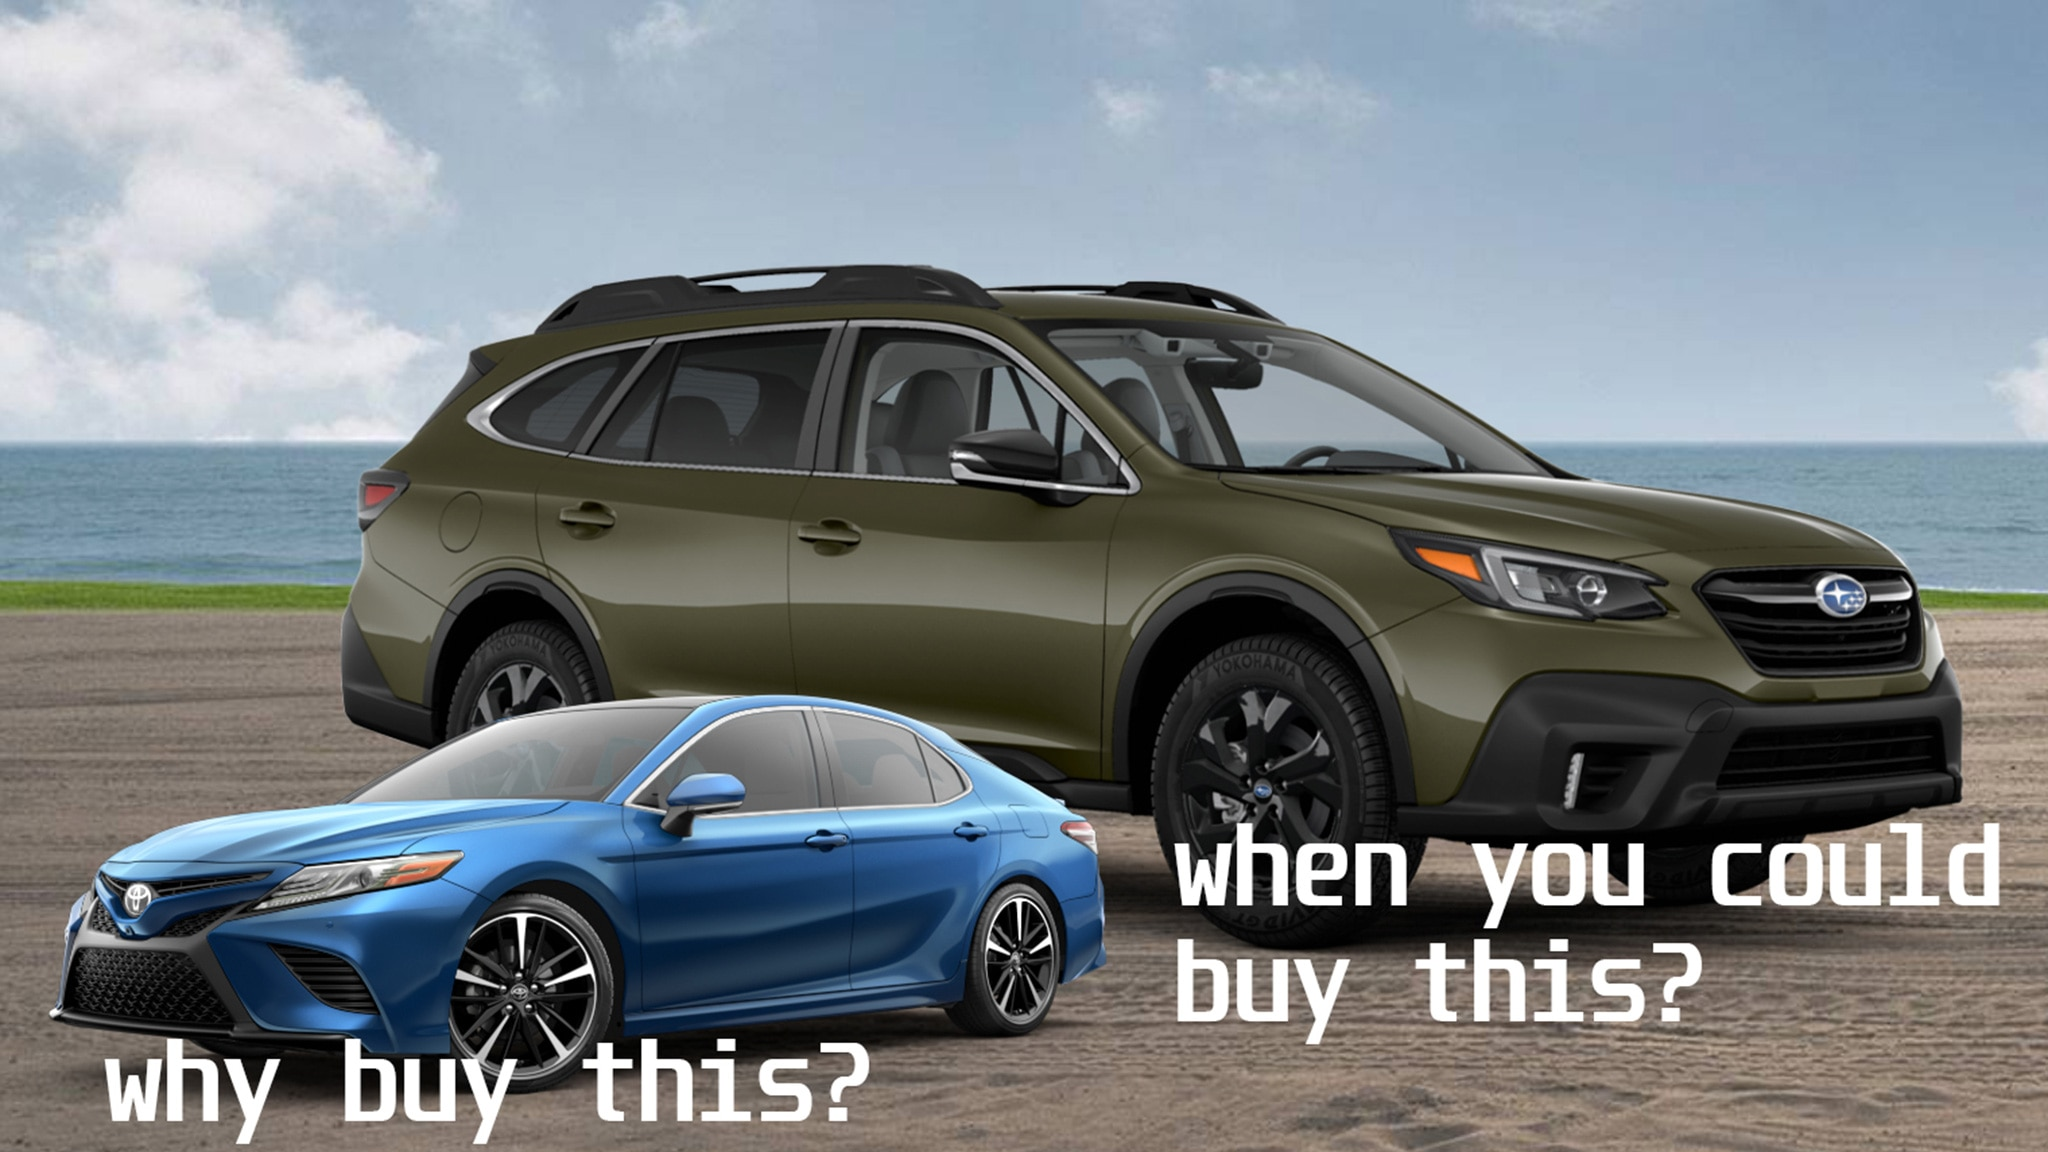 Buy A Camry Or Buy This 2021 Subaru Outback Xt